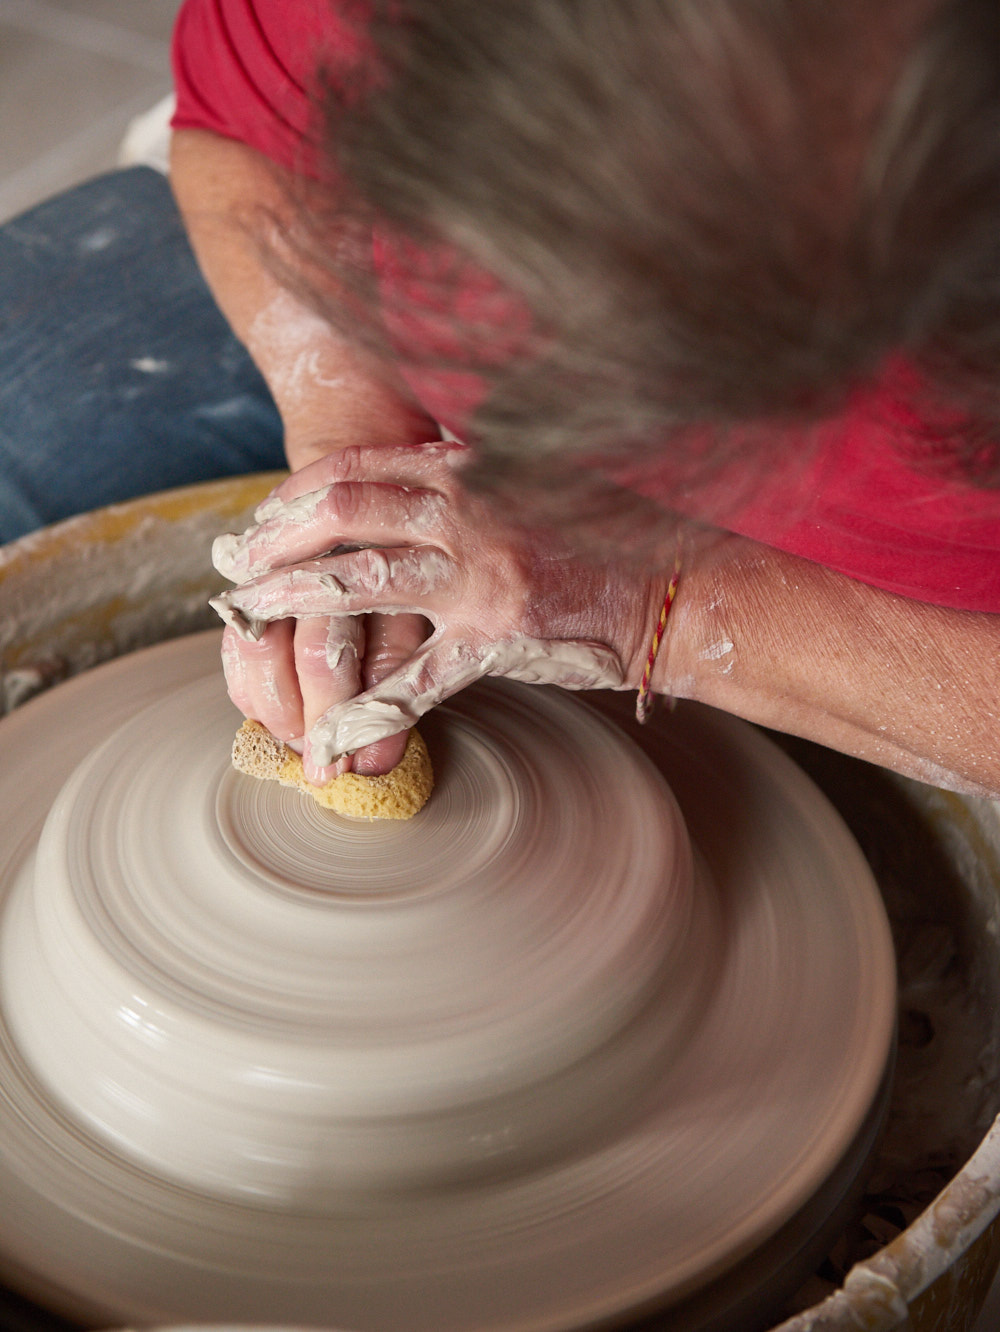 Making Pottery | Amy Roth Photo